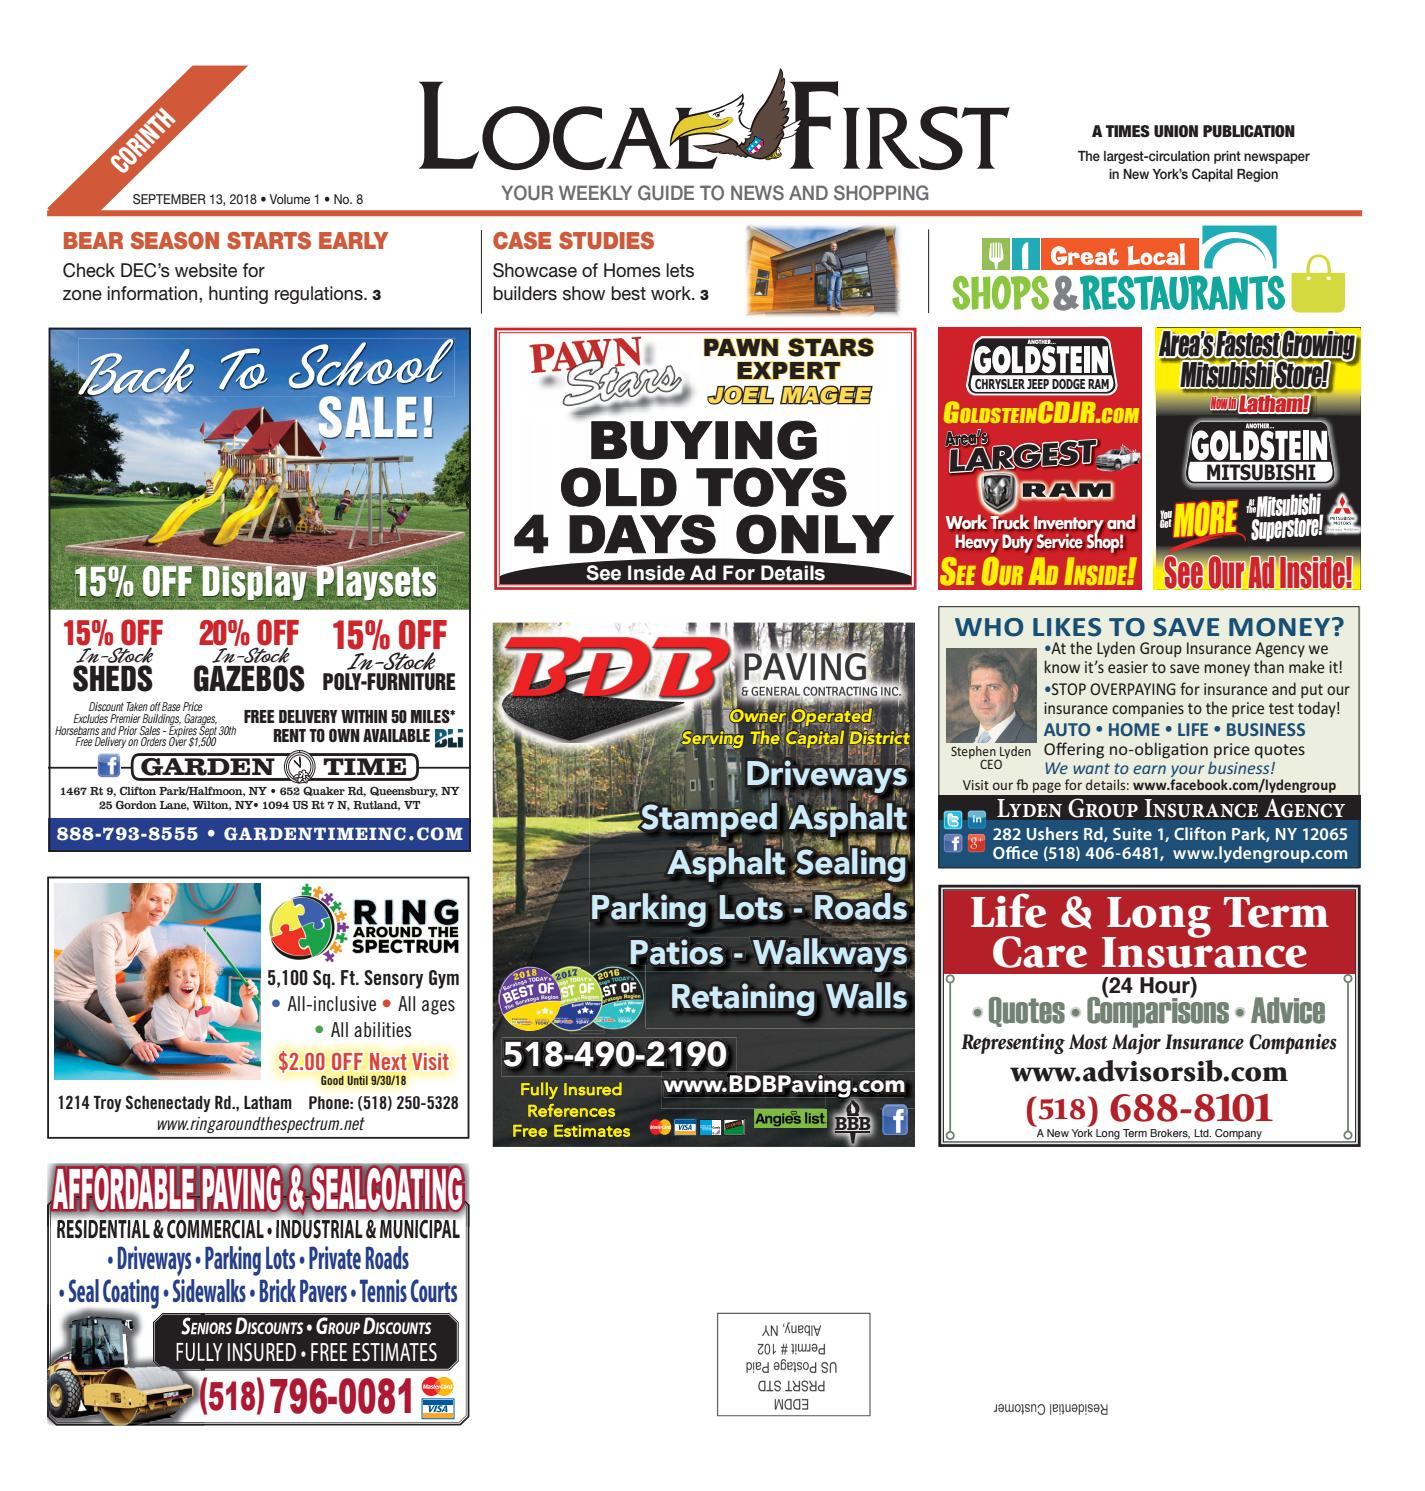 Nemer Chrysler Jeep Dodge Ram Queensbury Ny: Local First Corinth 091318 By Capital Region Weekly